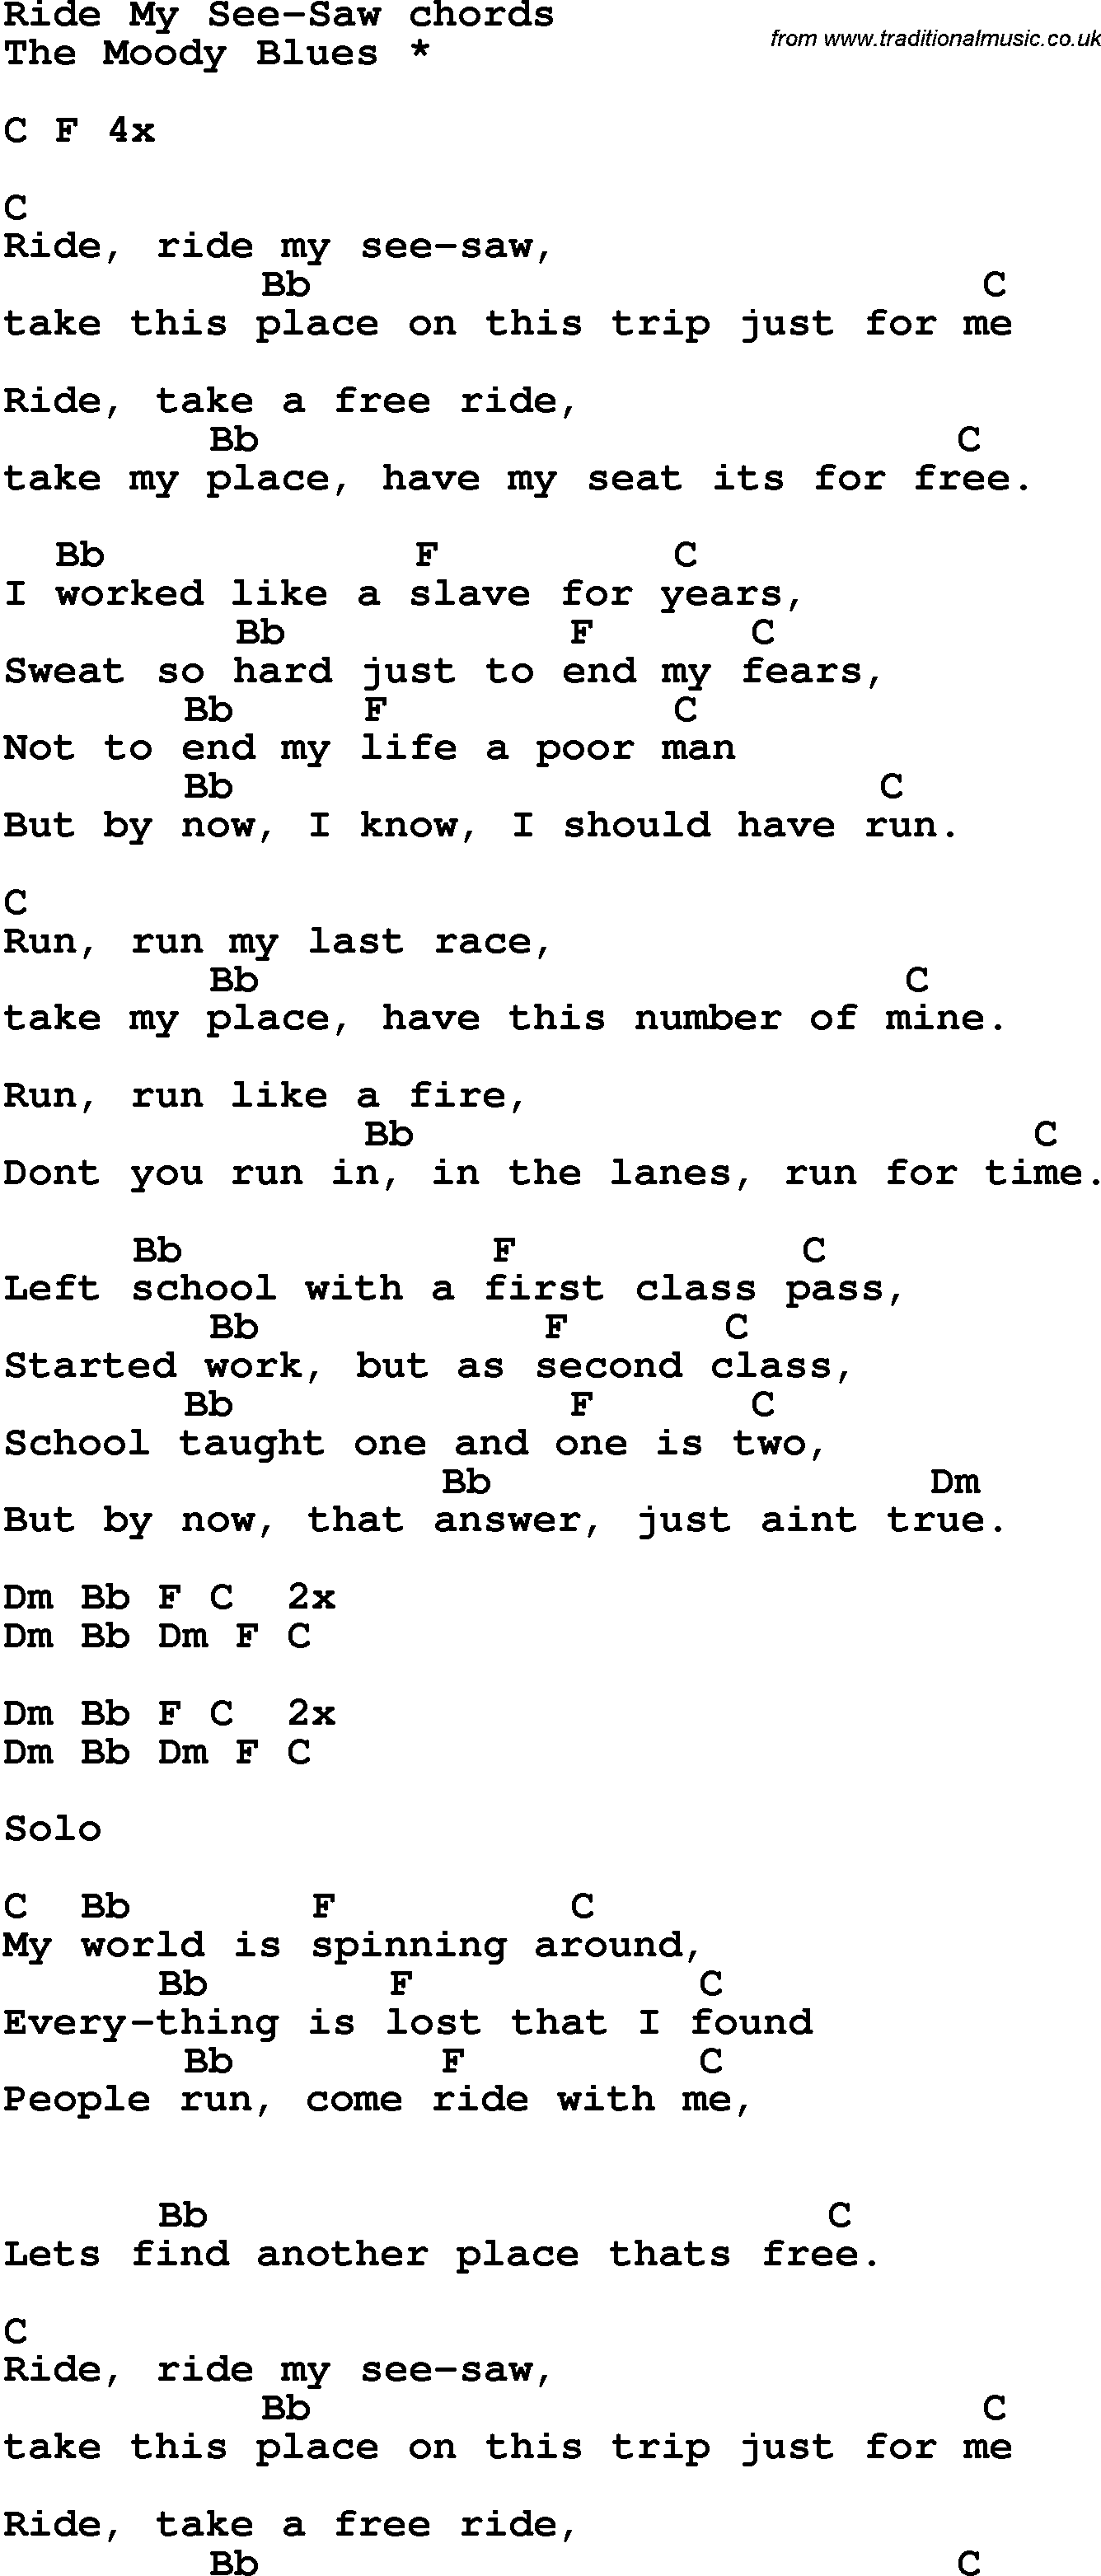 ride my see saw lyrics